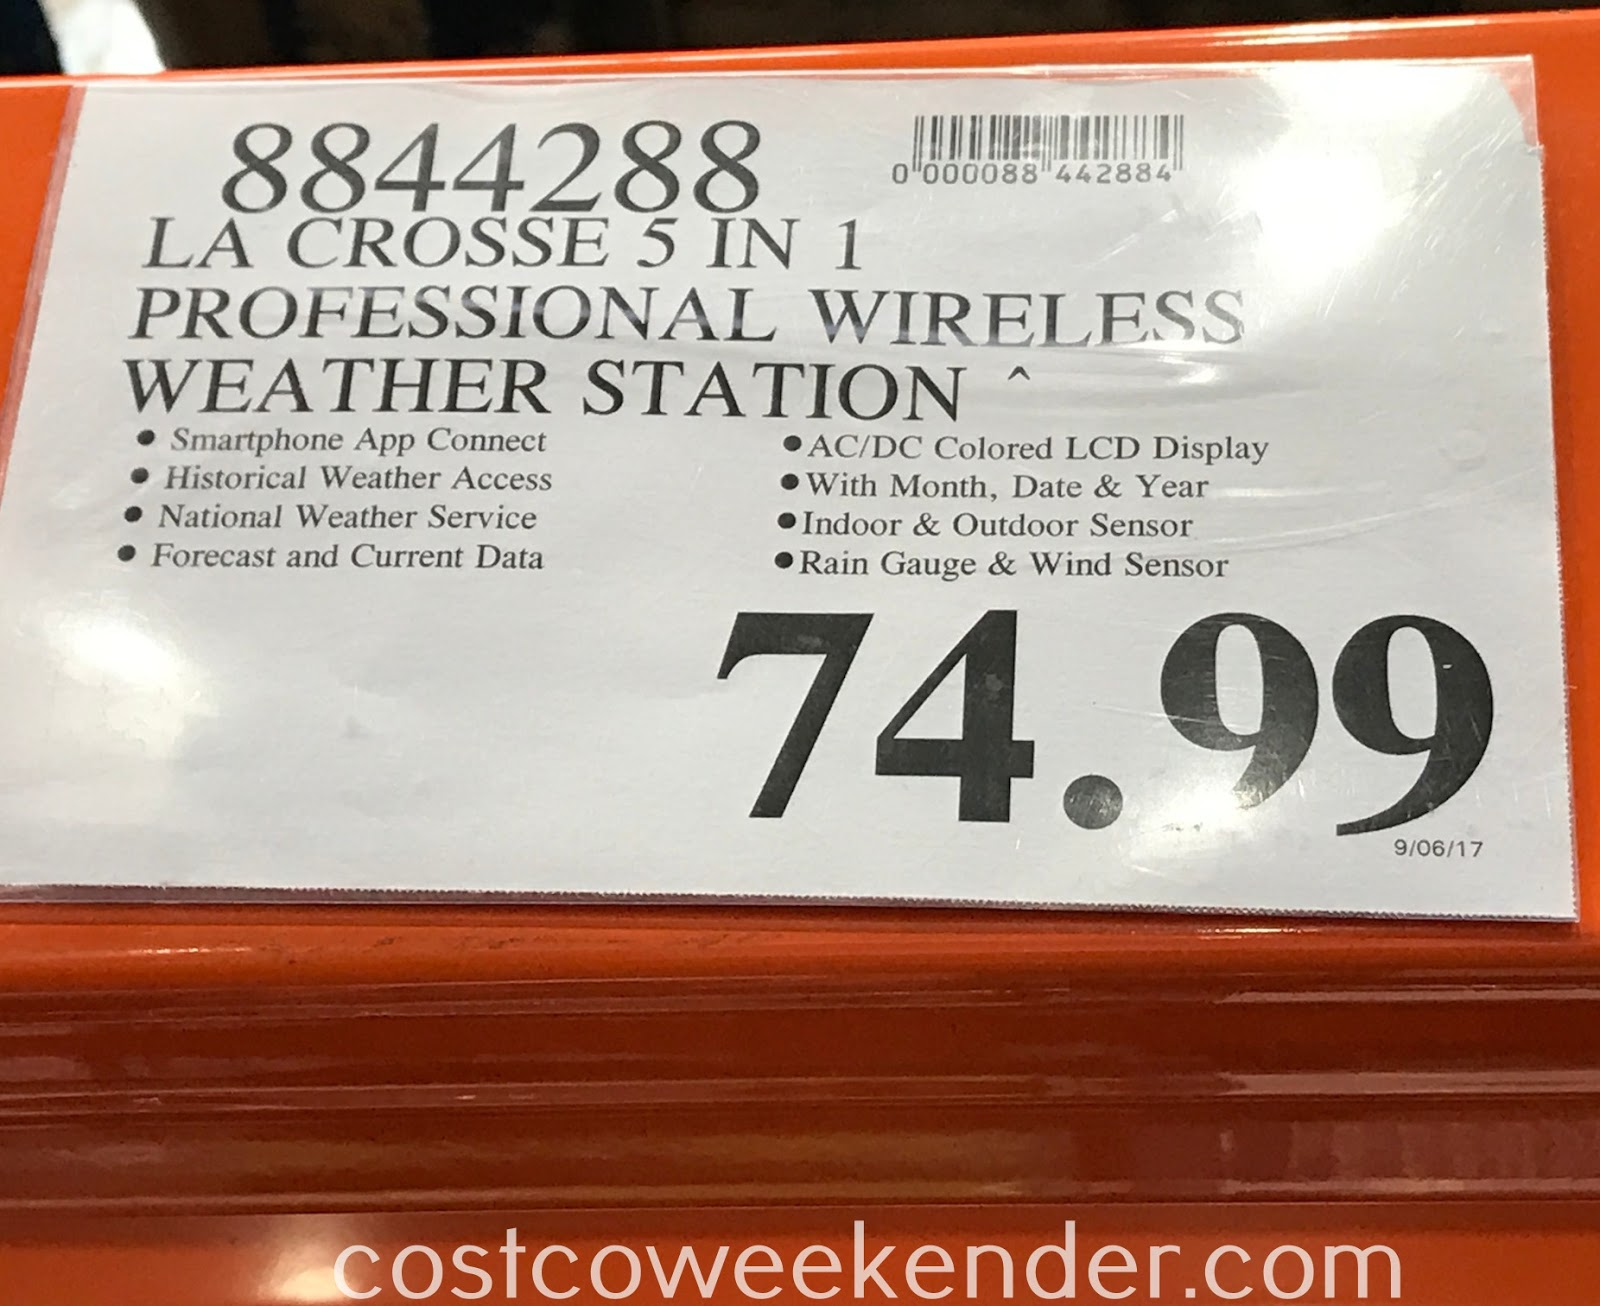 Deal for the La Crosse Professional Remote Monitoring Weather Station at Costco